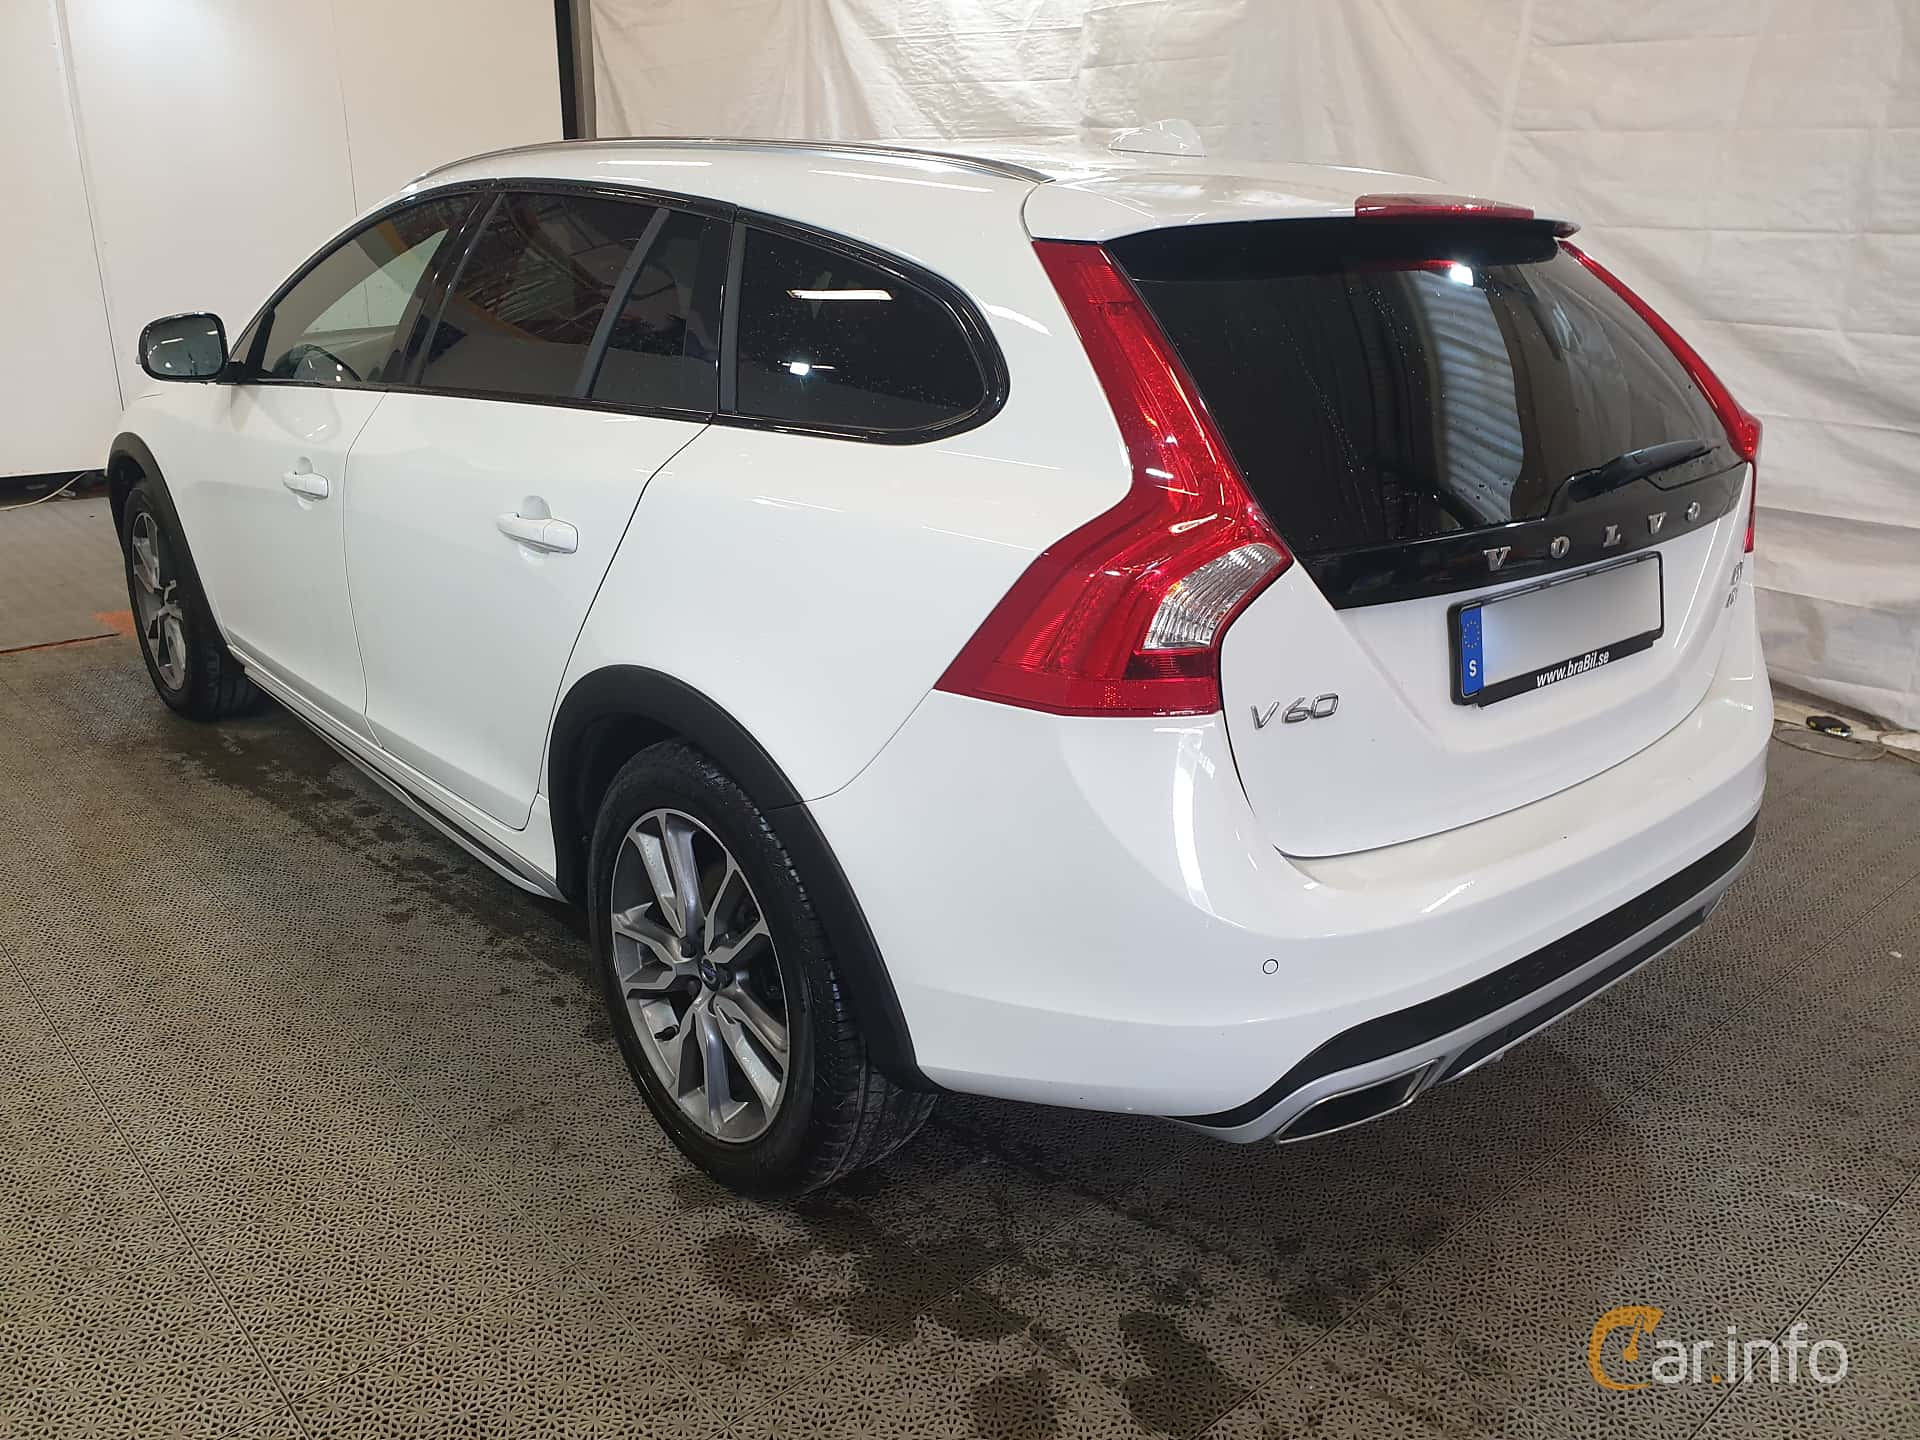 Volvo V60 Cross Country D4 AWD Geartronic, 190hp, 2016